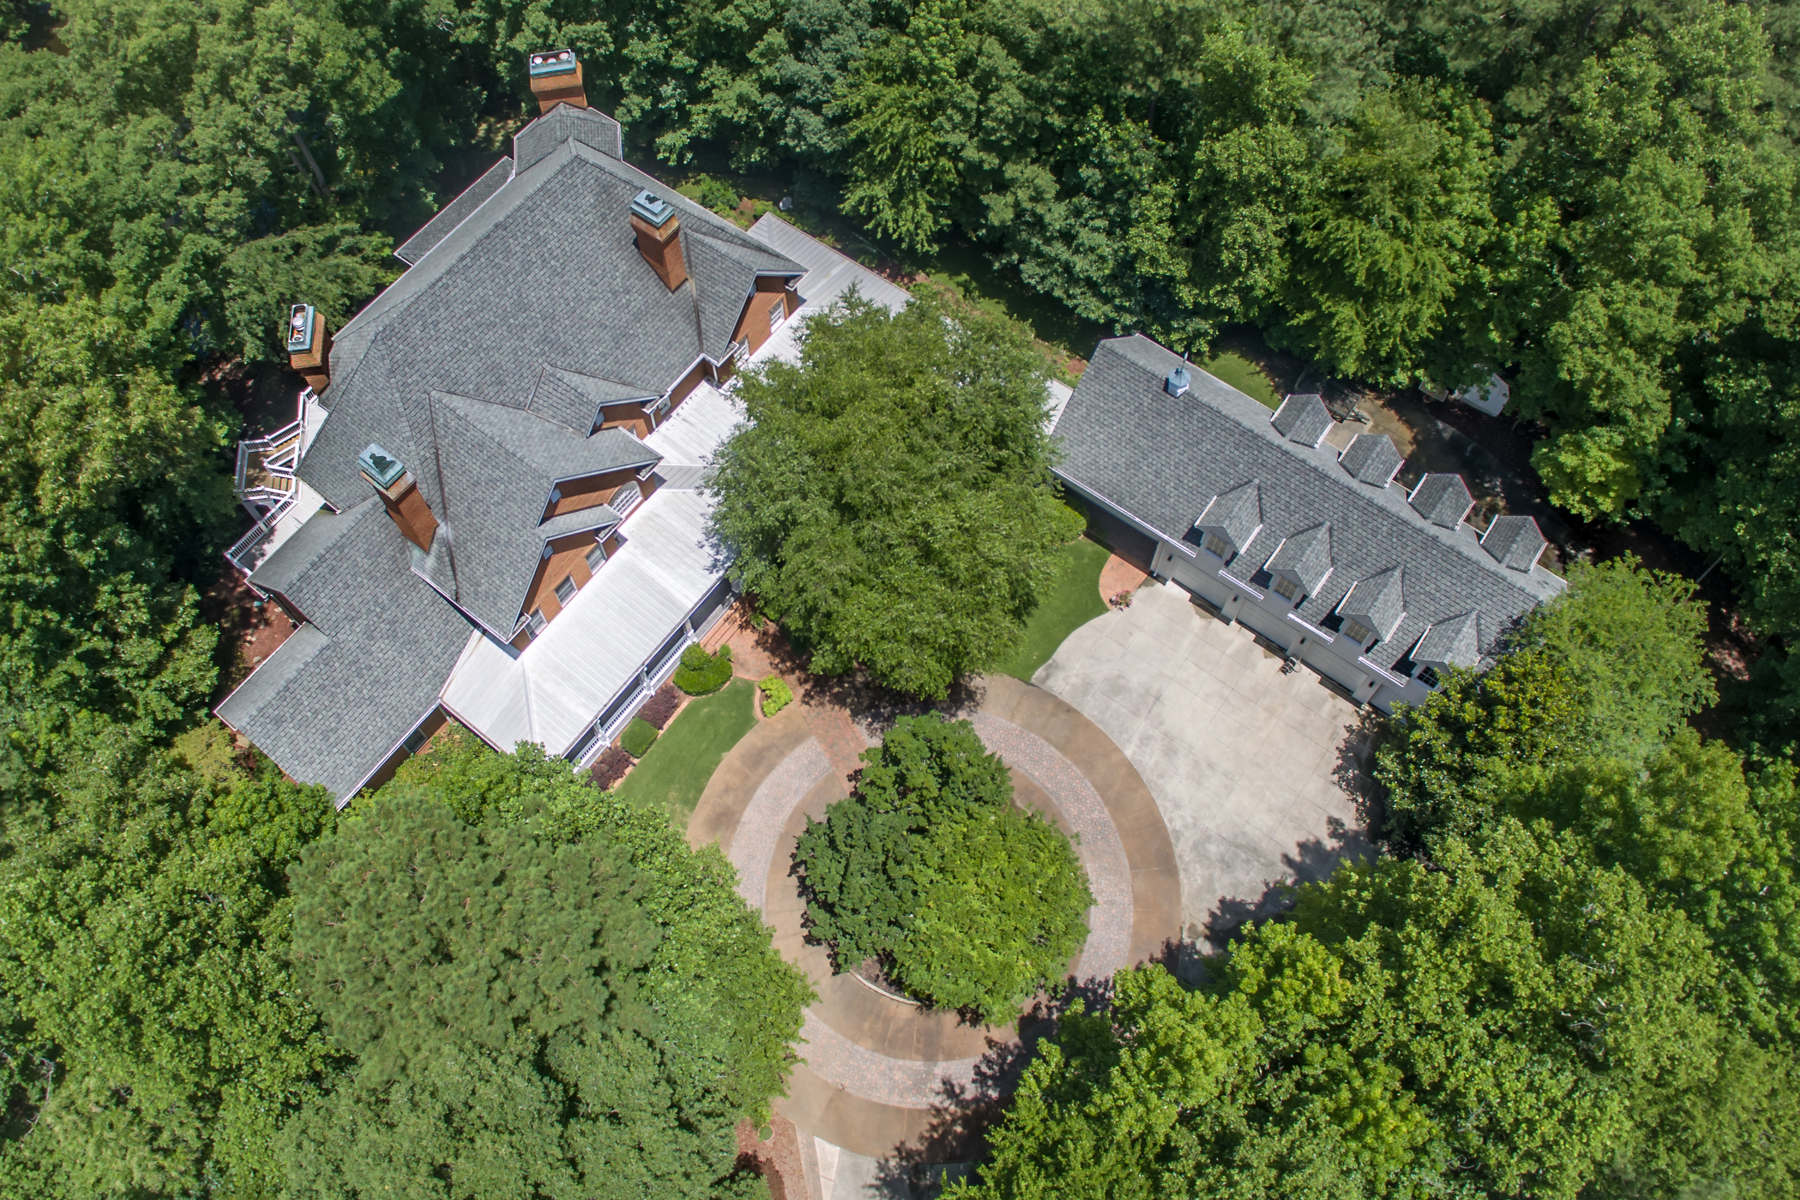 단독 가정 주택 용 매매 에 Magnificent Gated Estate 1836 County Line Road NW Acworth, 조지아 30101 미국